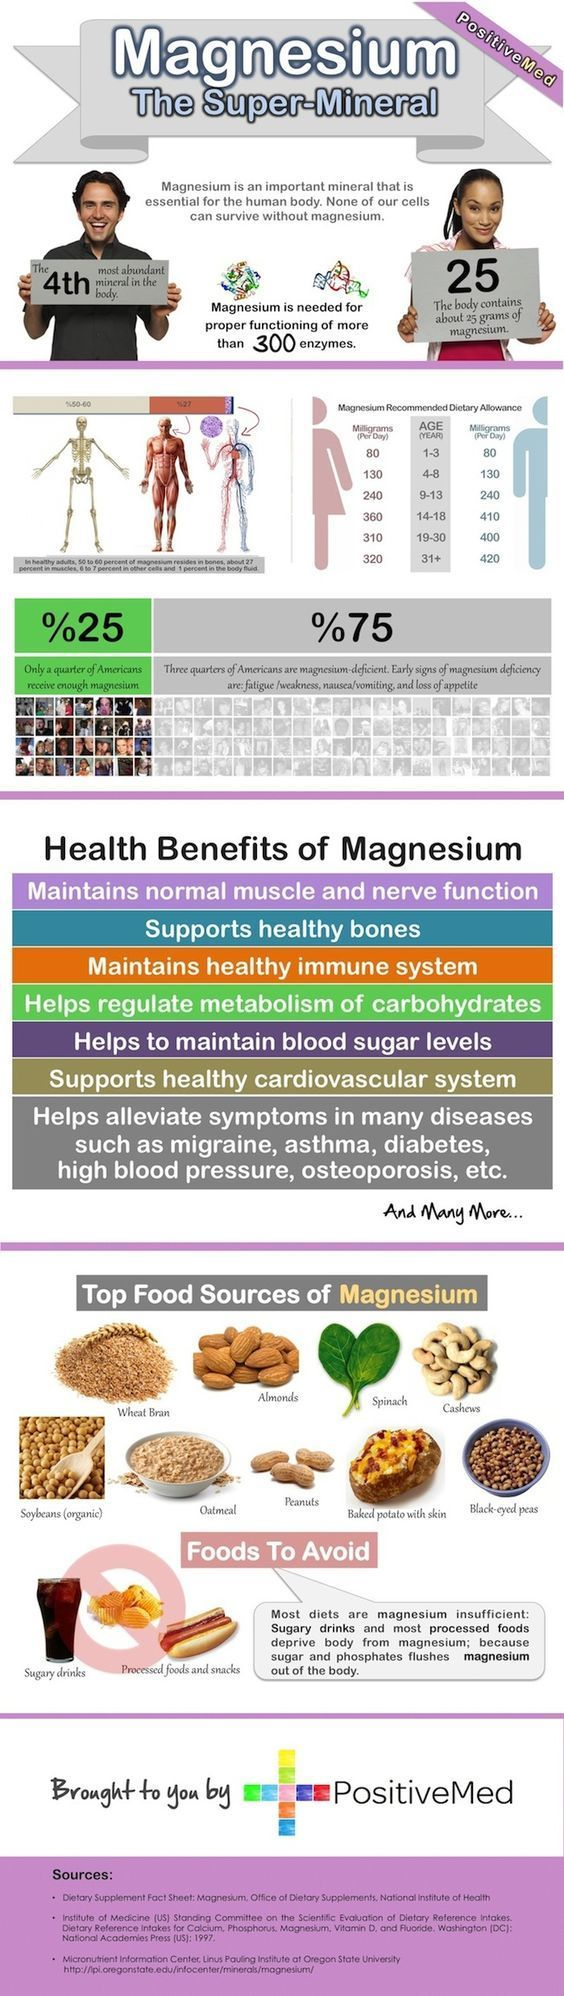 Magnesium, The Super-Mineral: This important mineral is needed for more than 300 biochemical reactions in the body: Starting with maintaining normal muscle and nerve function to regulating the heart rhythm, from supporting a healthy immune system to keeping bones strong, magnesium plays an essential role. Magnesium also helps control blood sugar levels, promotes normal blood pressure, and plays an important role in energy metabolism and protein synthesis. #BloodPressureControl